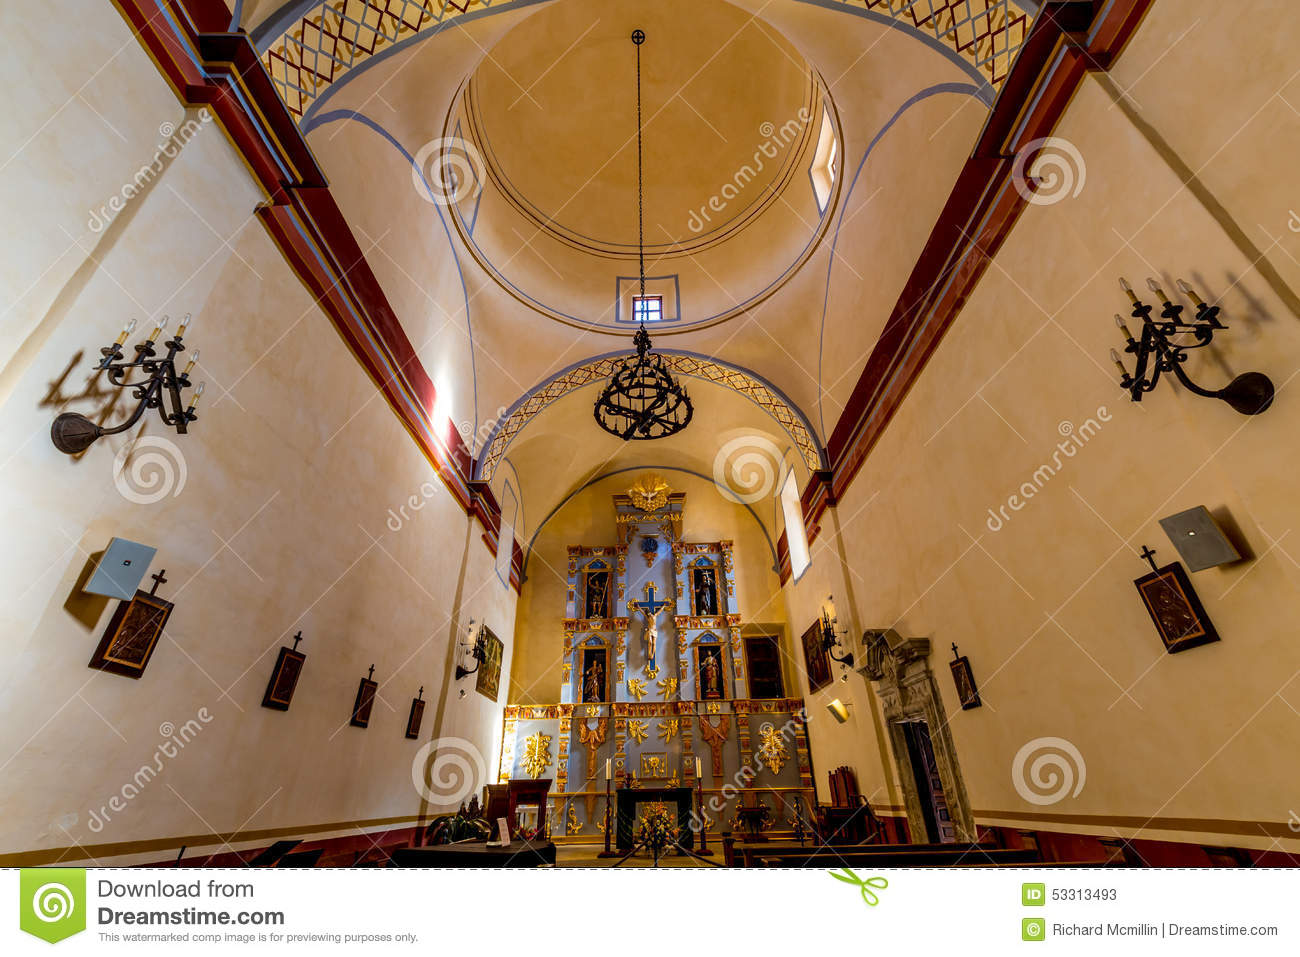 The Beautiful Larger Chapel of the Historic Old West Spanish Mission San Jose